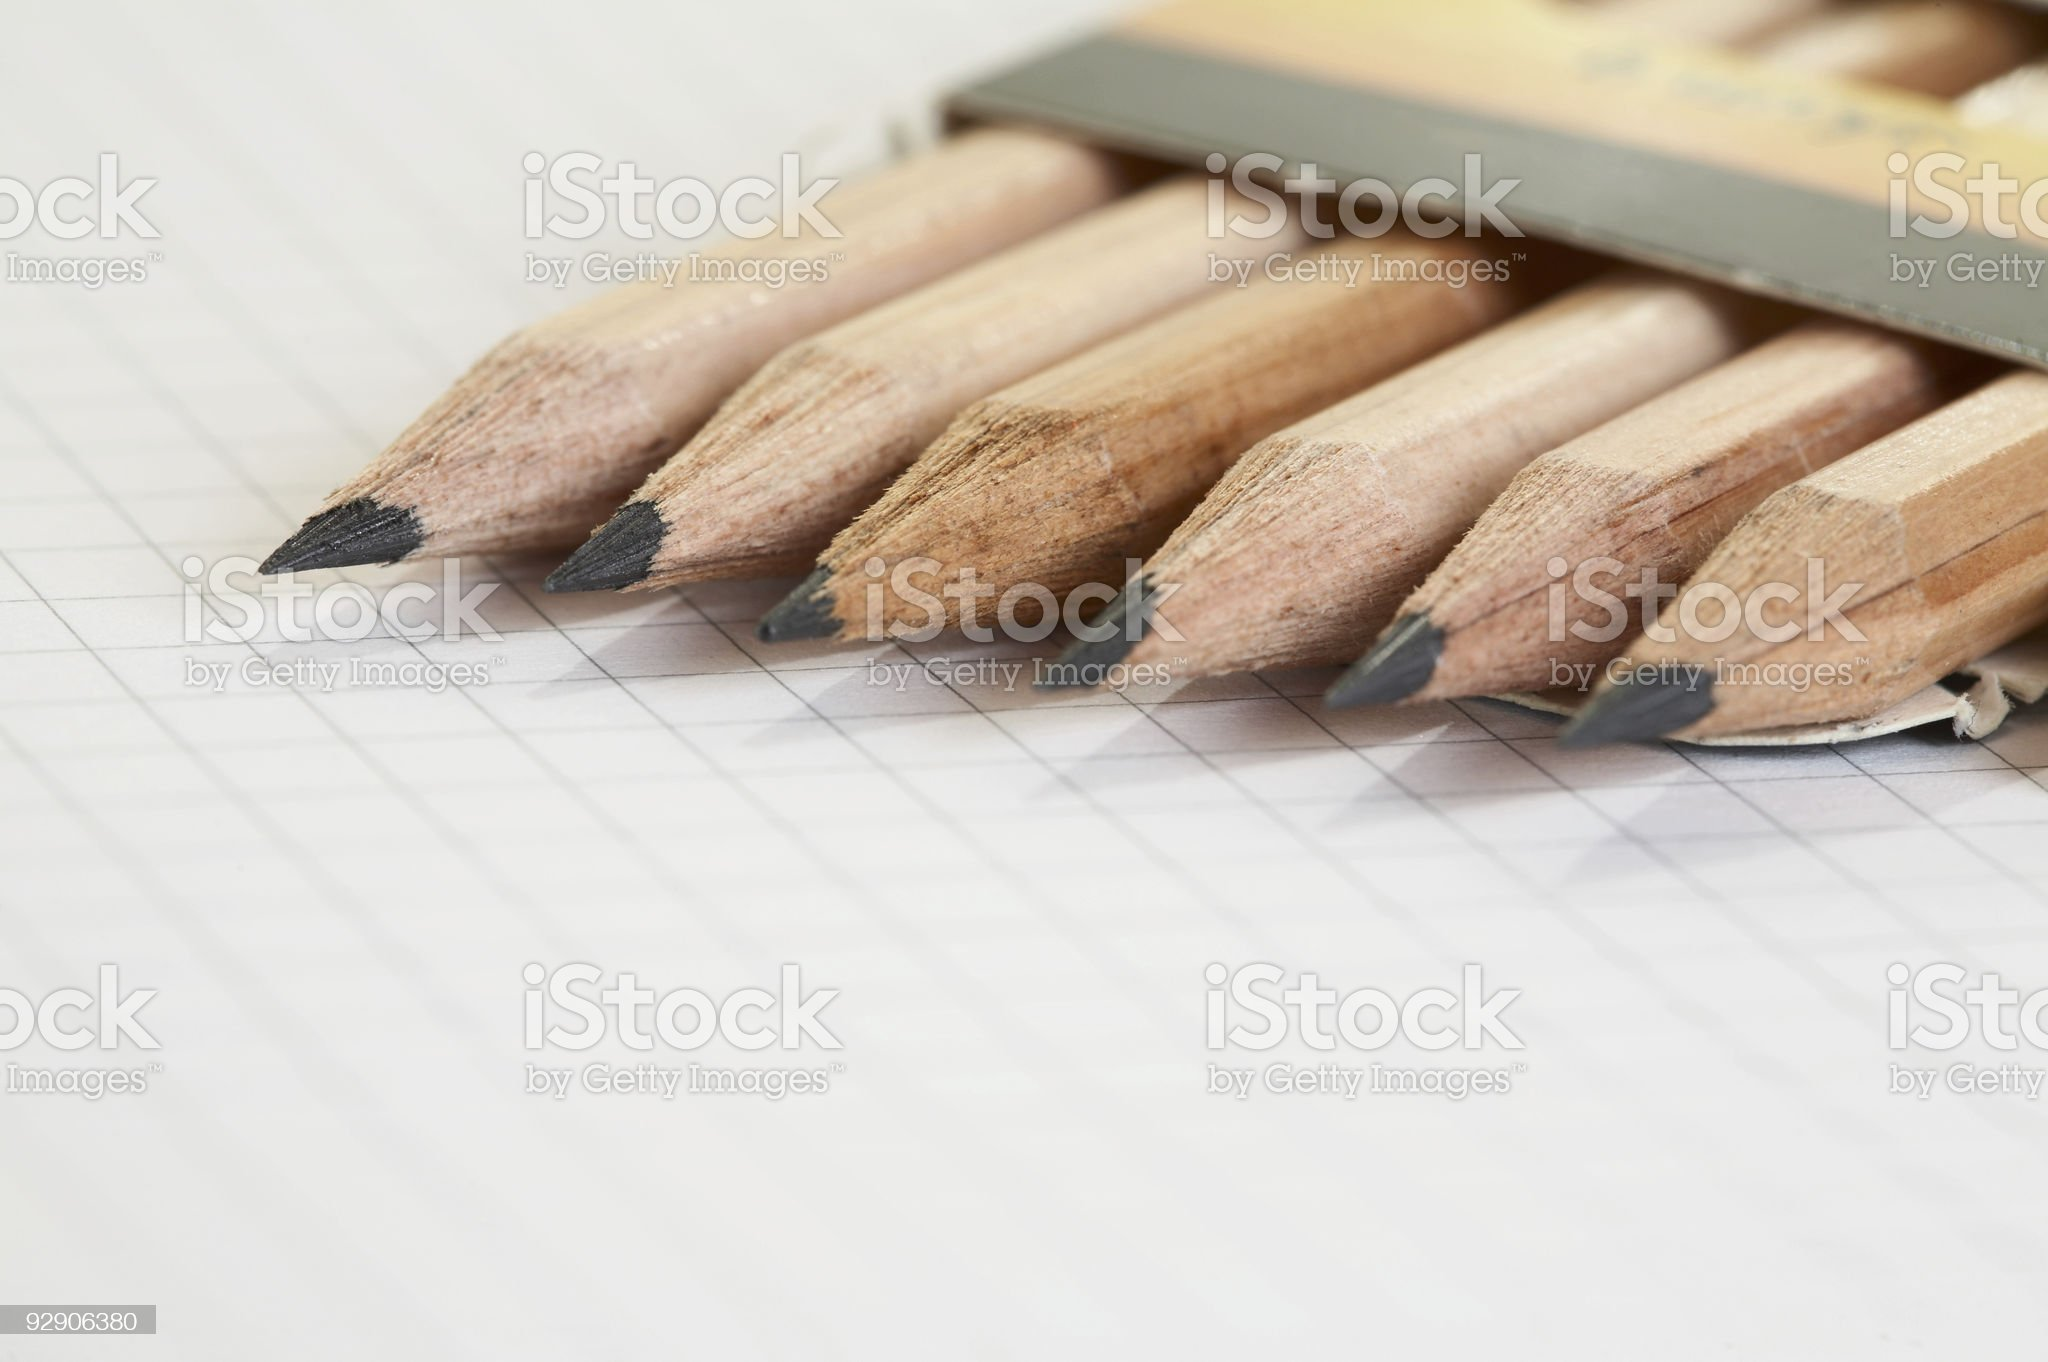 line pencils in a box royalty-free stock photo